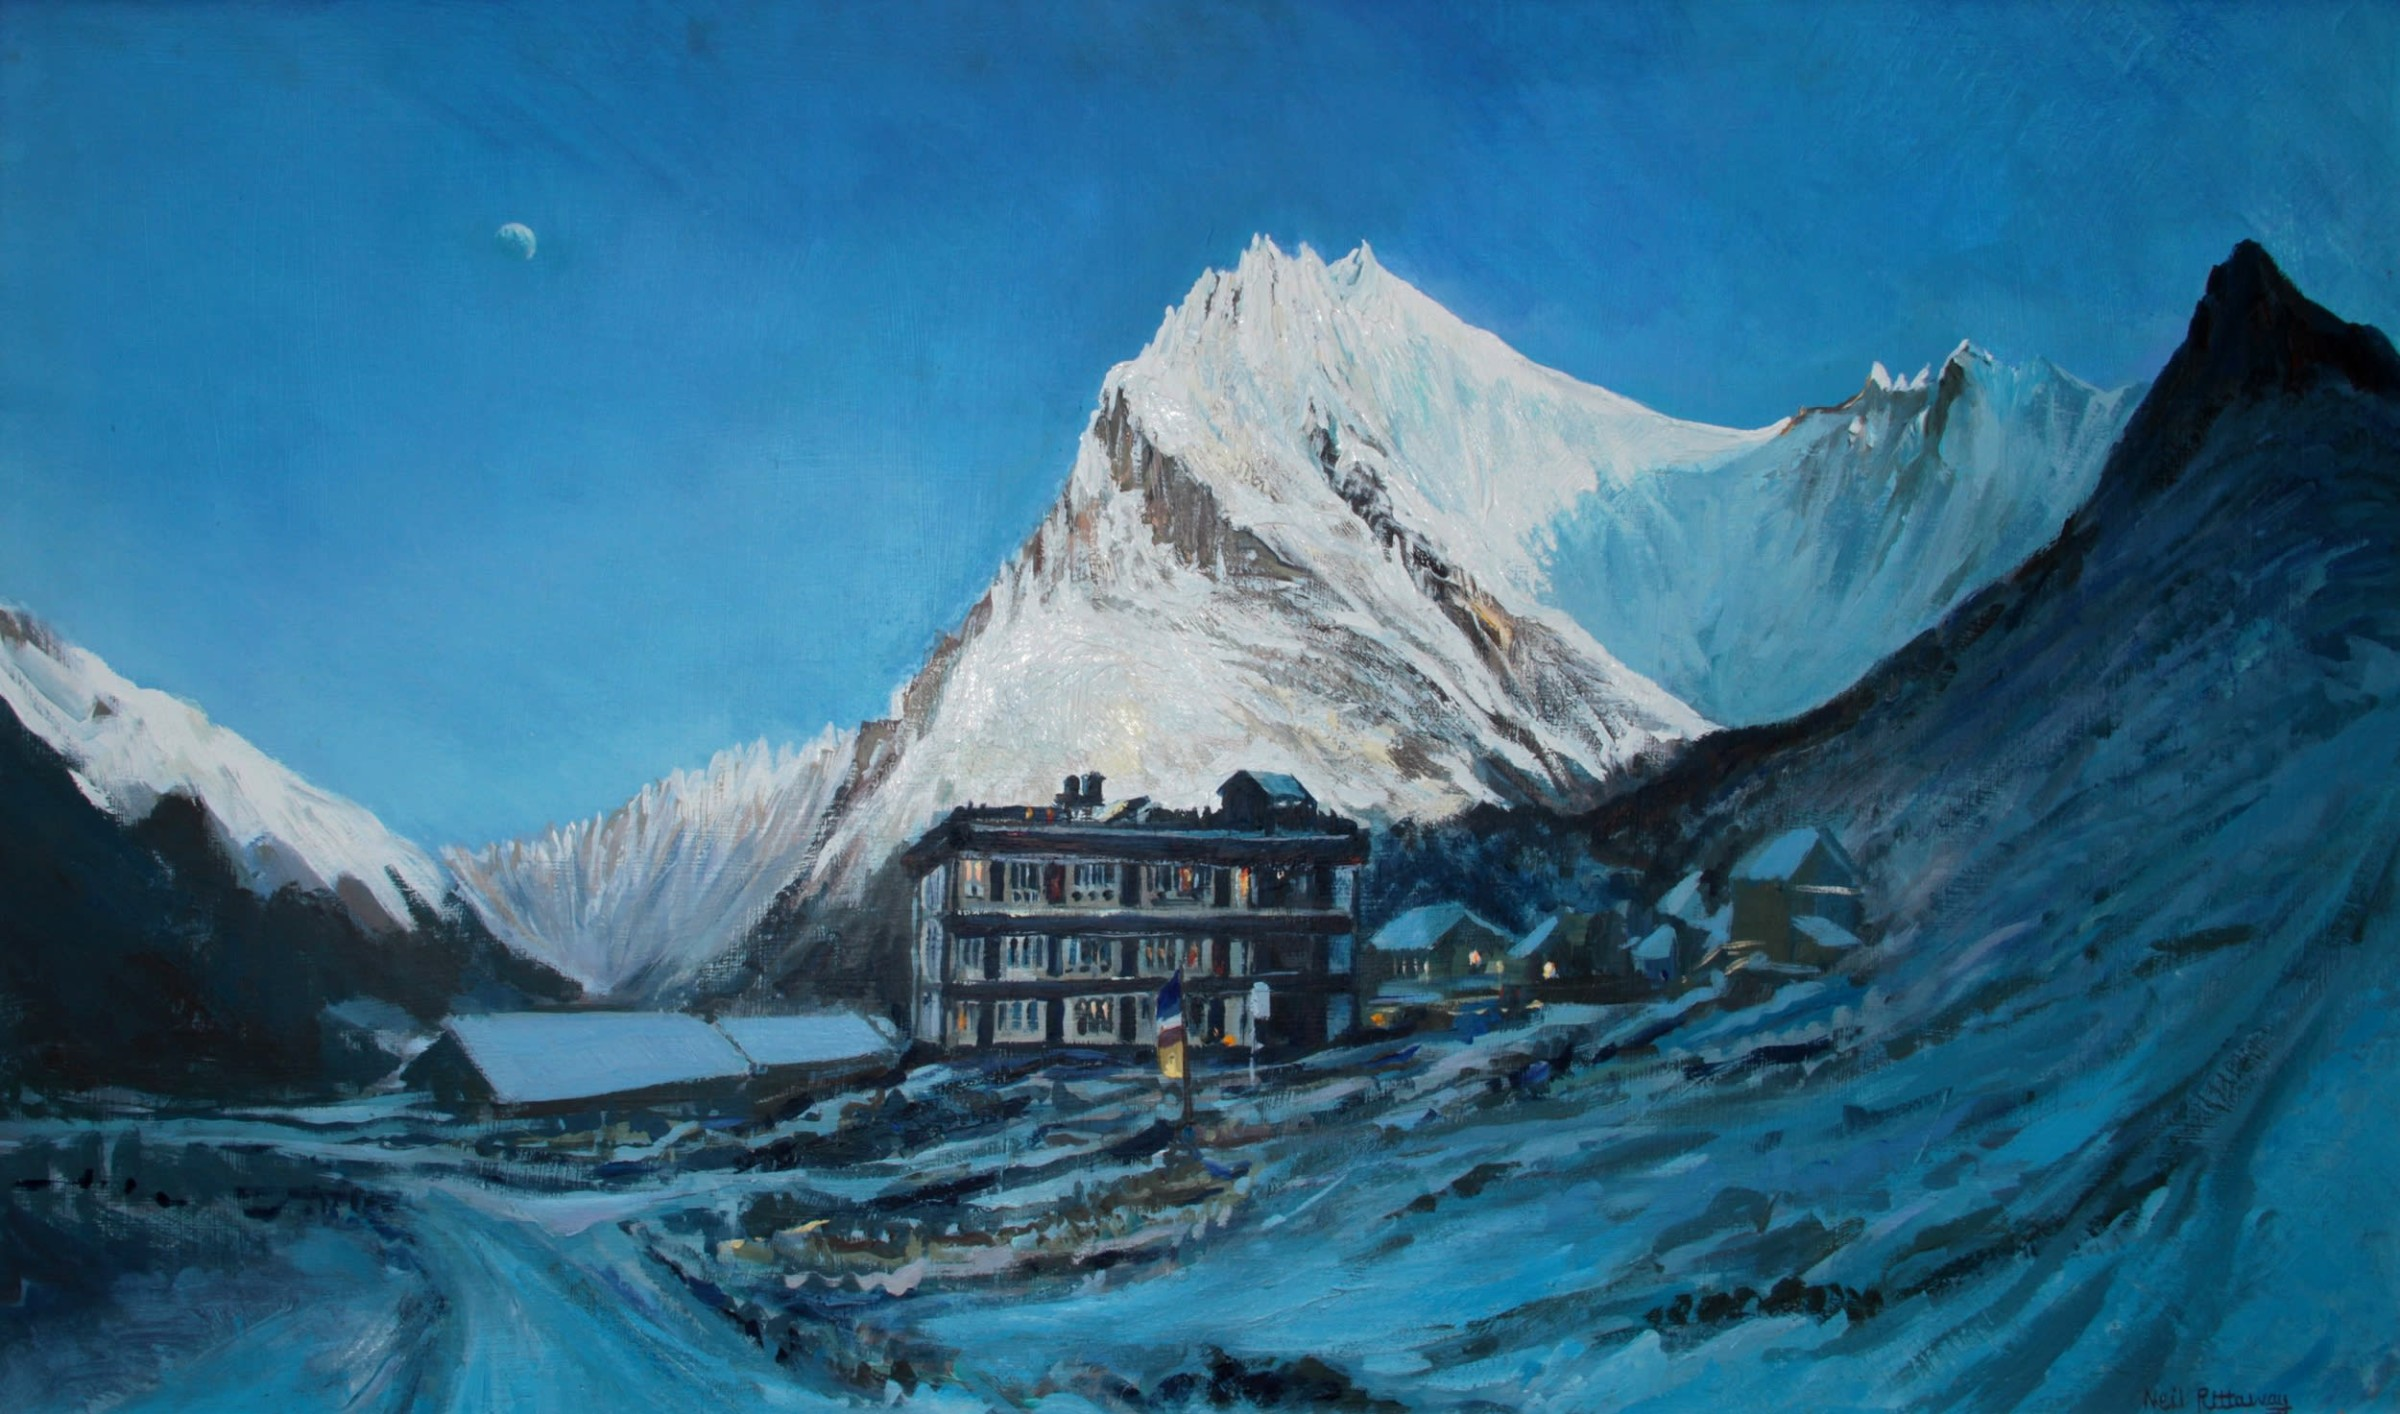 """<span class=""""link fancybox-details-link""""><a href=""""/artists/94-neil-pittaway/works/12451-neil-pittaway-snowy-dusk-in-the-langtang-at-kyranjin-gumba/"""">View Detail Page</a></span><div class=""""artist""""><span class=""""artist""""><strong>Neil Pittaway</strong></span></div><div class=""""title""""><em>Snowy Dusk in the Langtang at Kyranjin Gumba, 3780m, Nepal</em></div><div class=""""medium"""">acrylic on board</div><div class=""""dimensions"""">Frame: 66 x 107 cm<br /> Artwork: 59 x 100 cm</div><div class=""""price"""">£3,500.00</div>"""